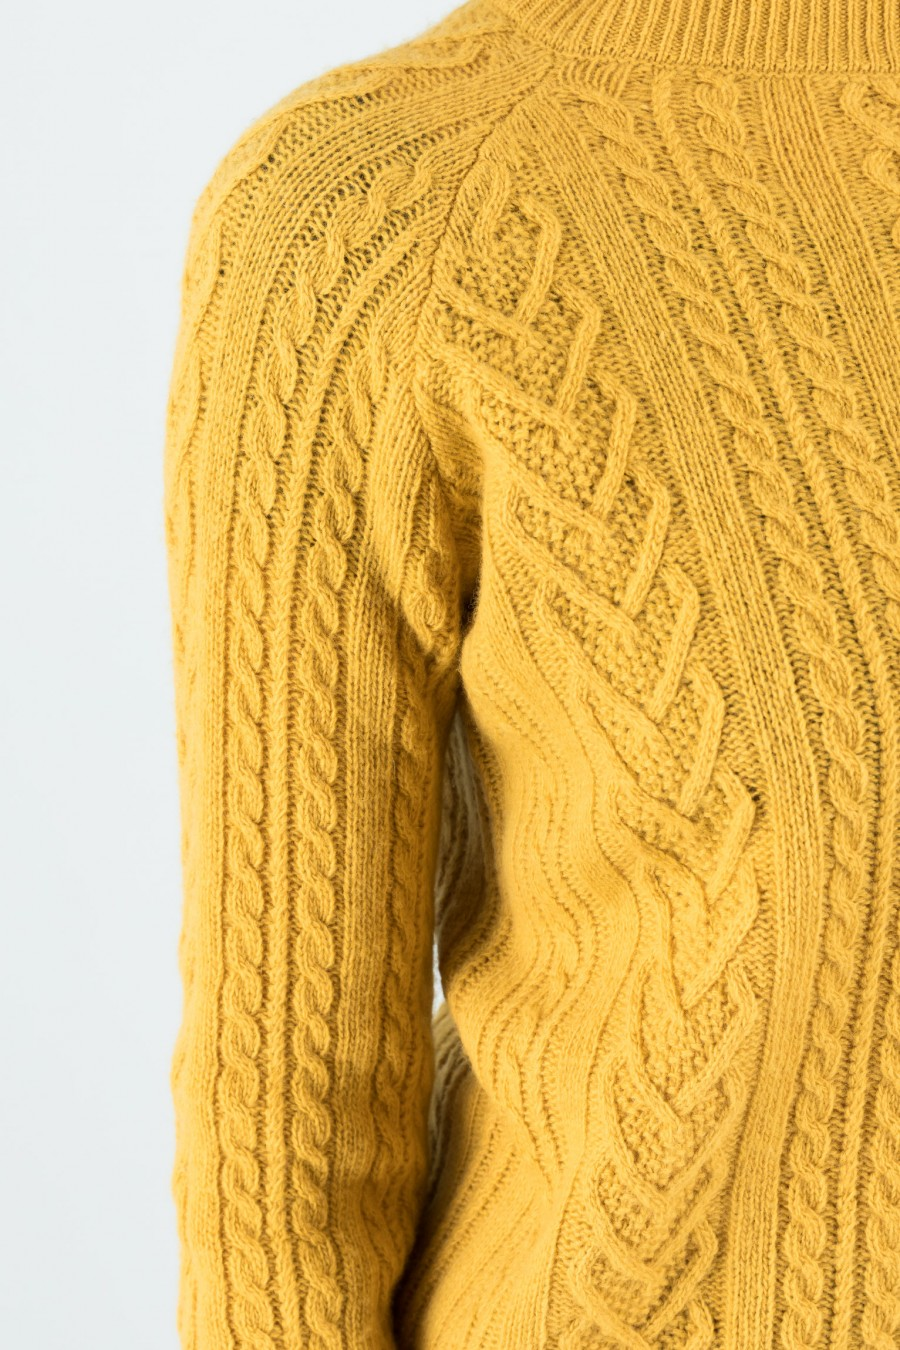 Crew-neck pullover made of merino wool and cashmere